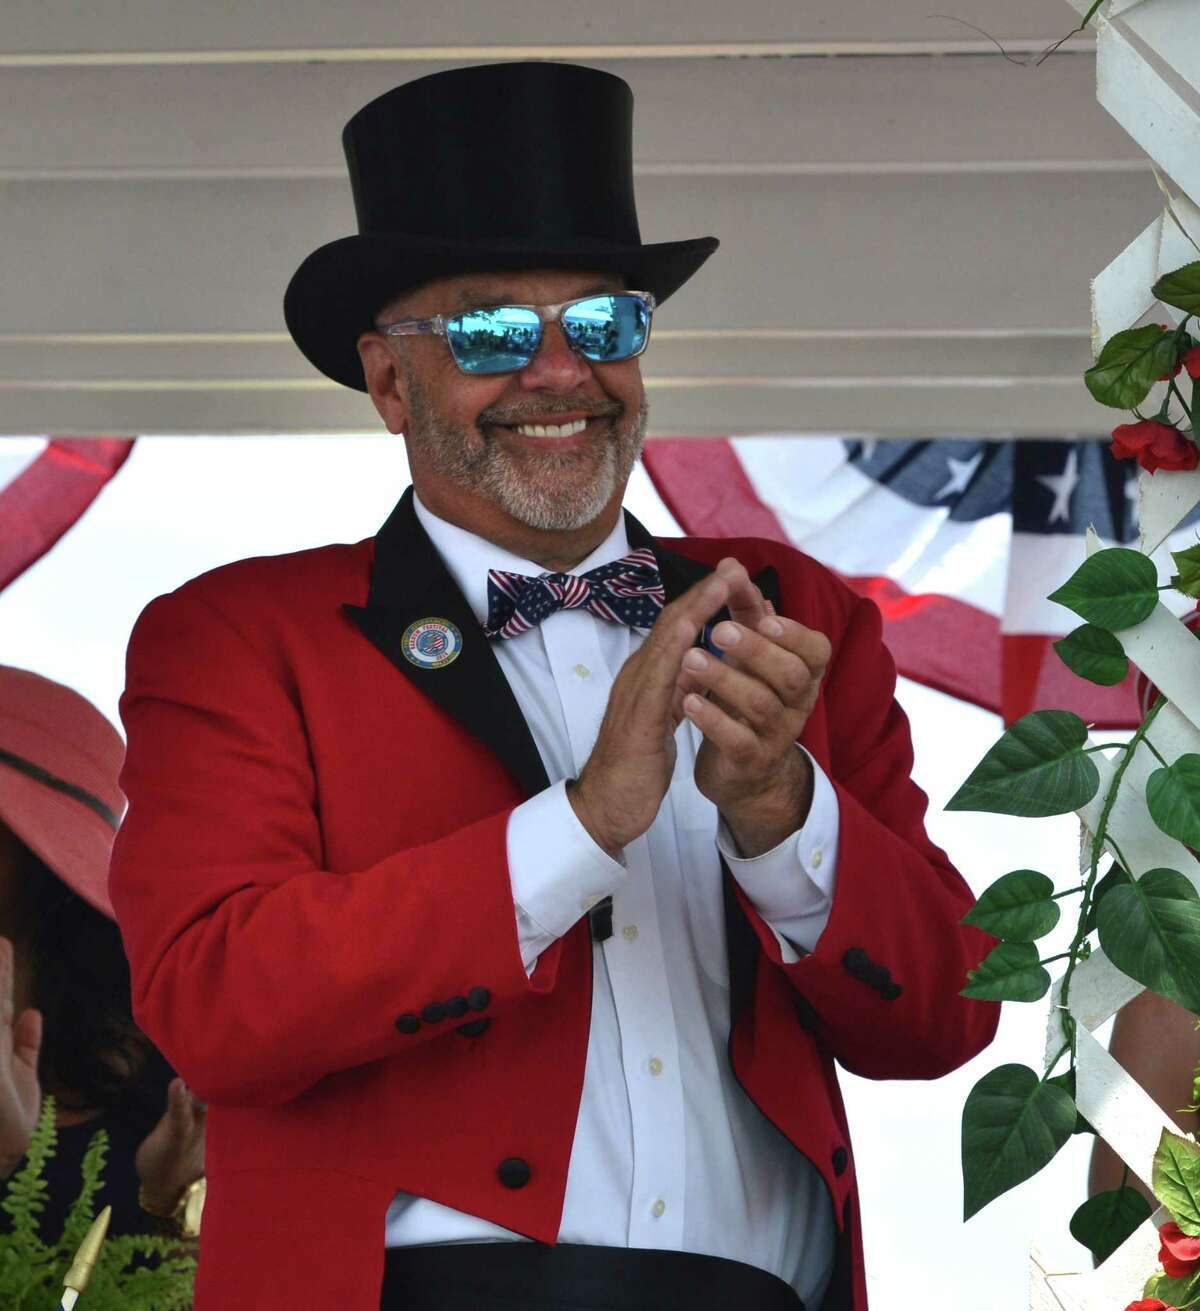 2018 Barnum Festival Ringmaster Johnny Vazzano applauds and waves to the crowd from his parade float during the 2018 Barnum Festival Great Street Parade at Seaside Park on Sunday July 1 2018 in Bridgeport Conn.